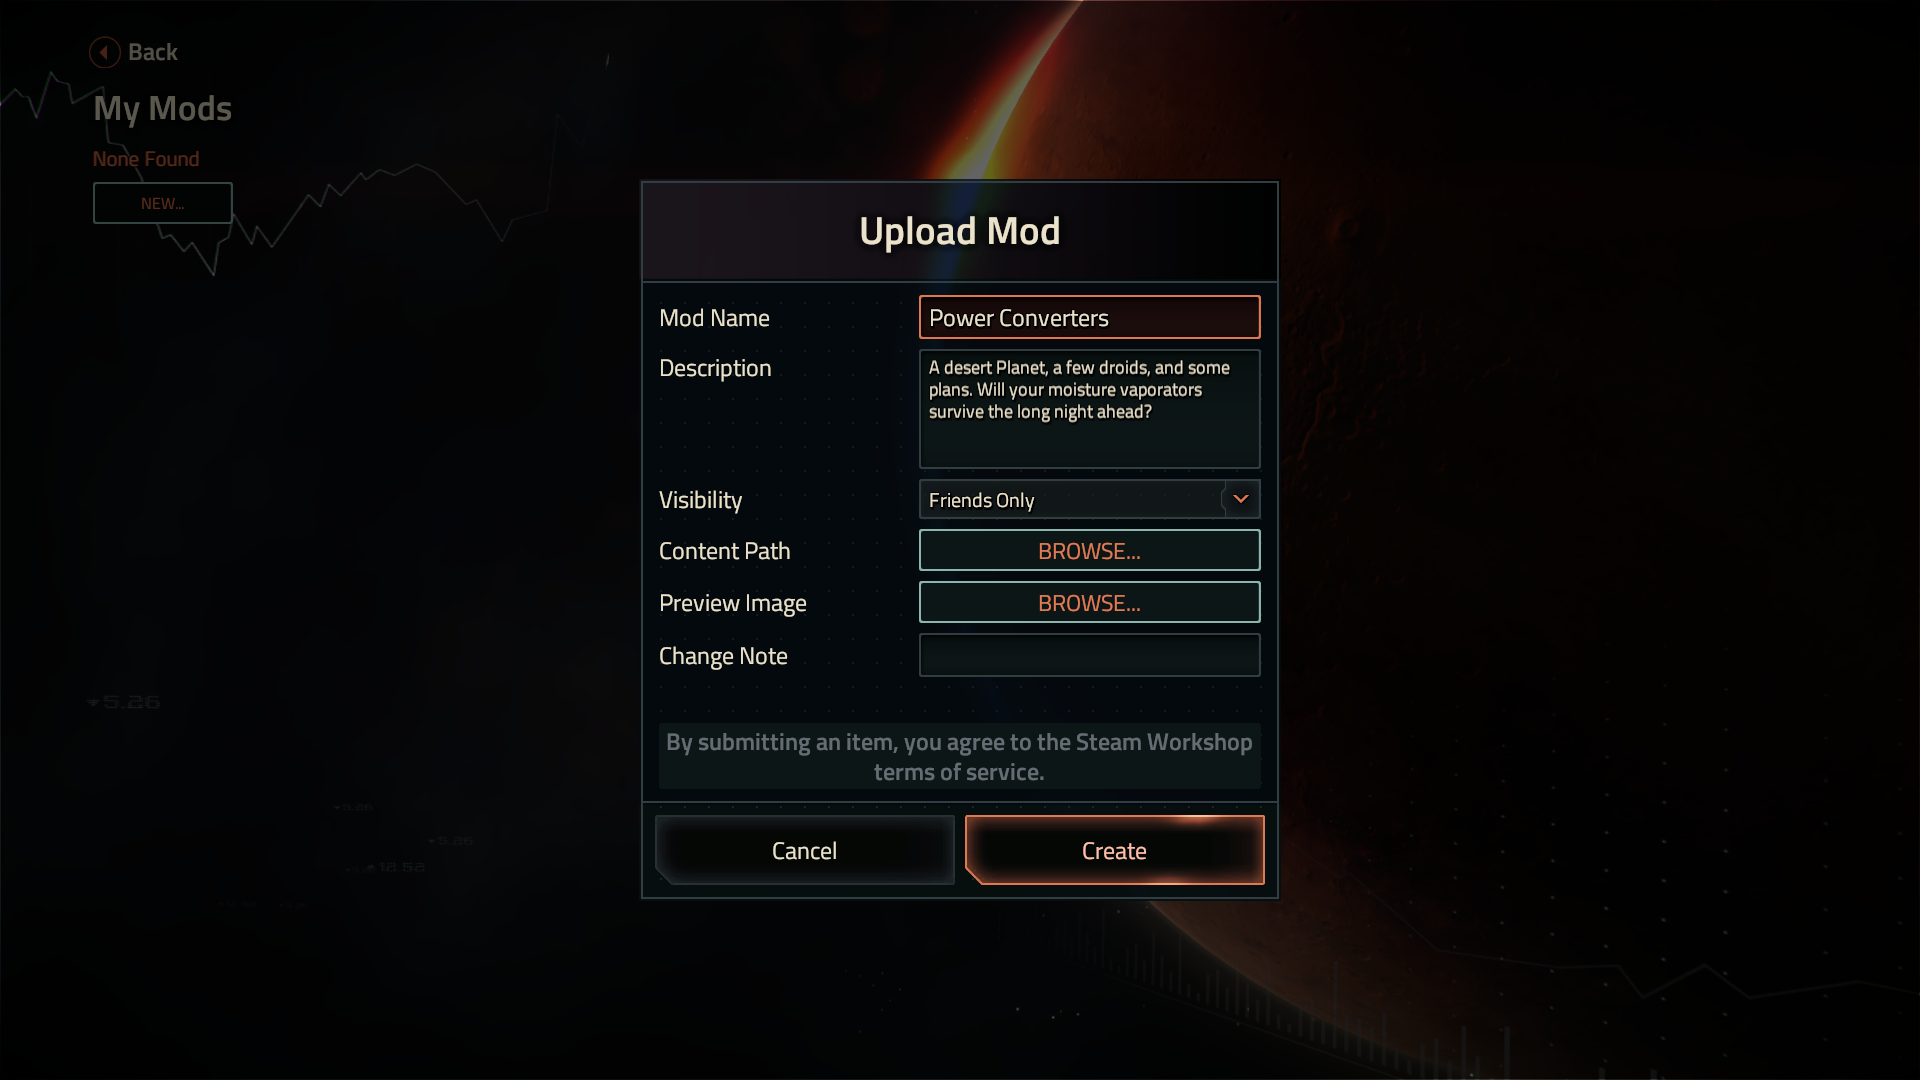 Modders, Rejoice: Offworld Trading Company now has Steam